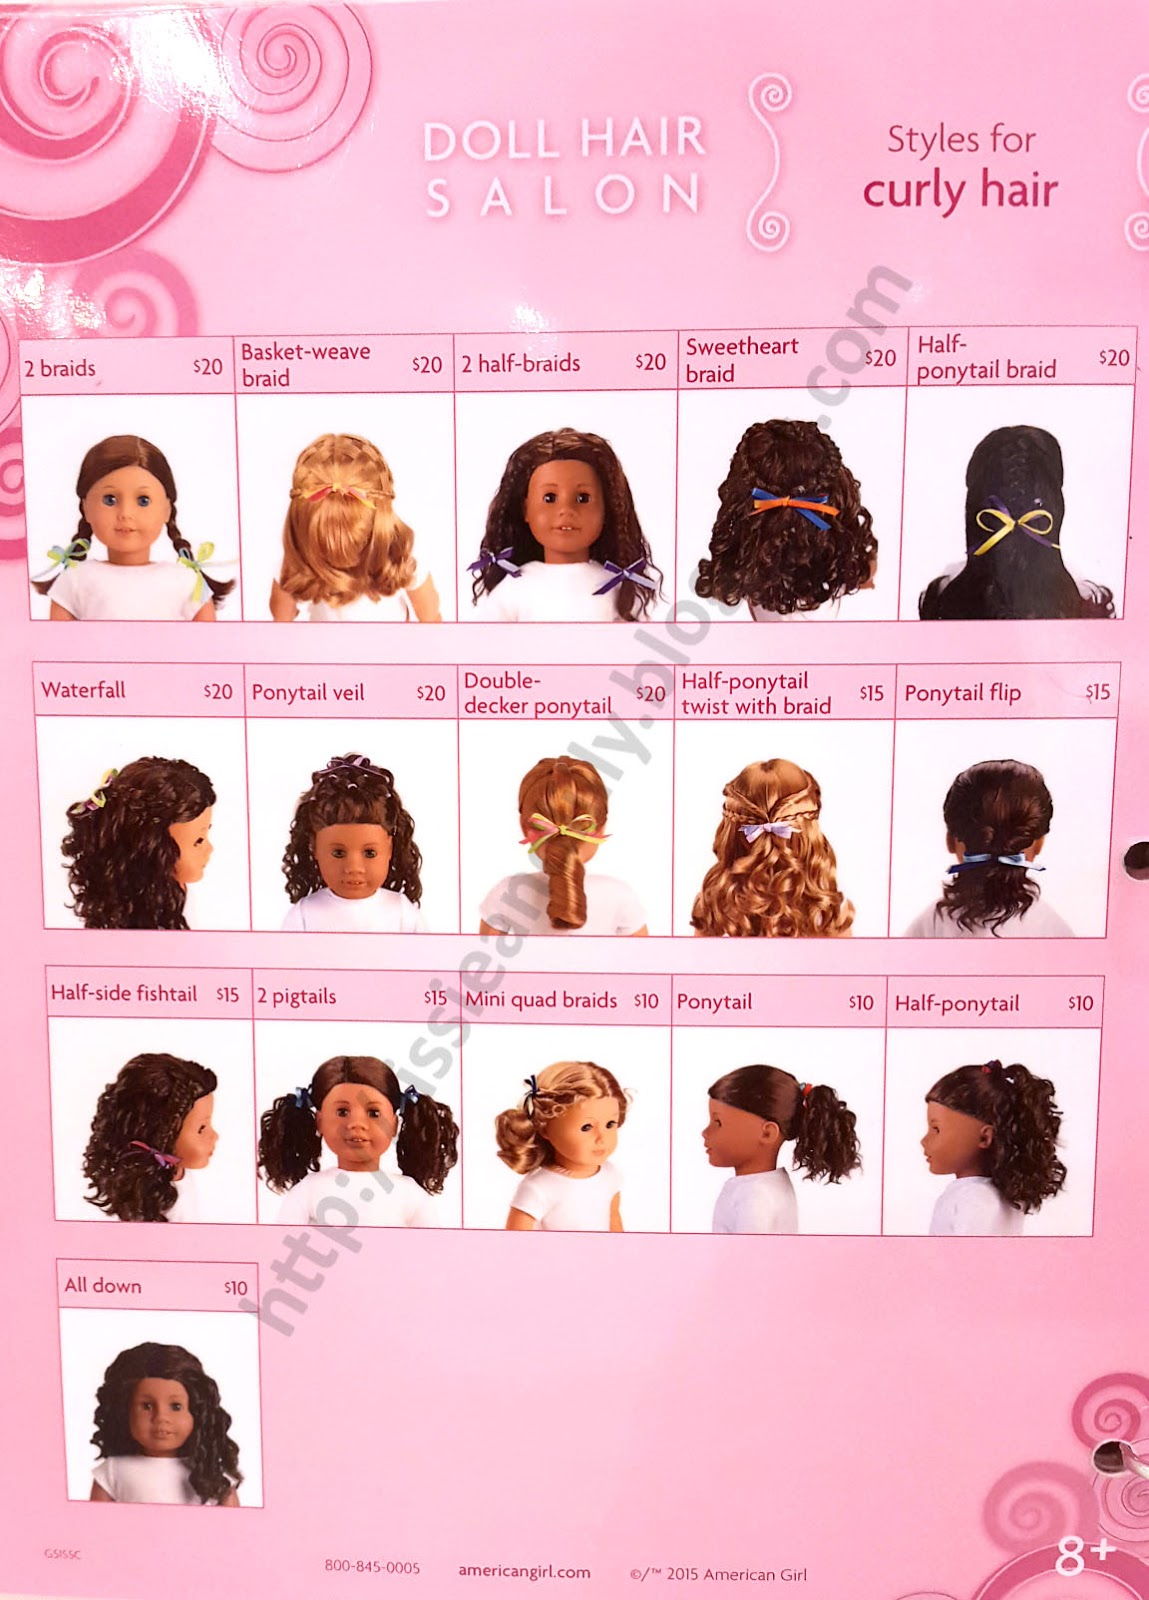 American Girl Doll Disney Hairstyles : Lissie lilly ag salon hairstyles